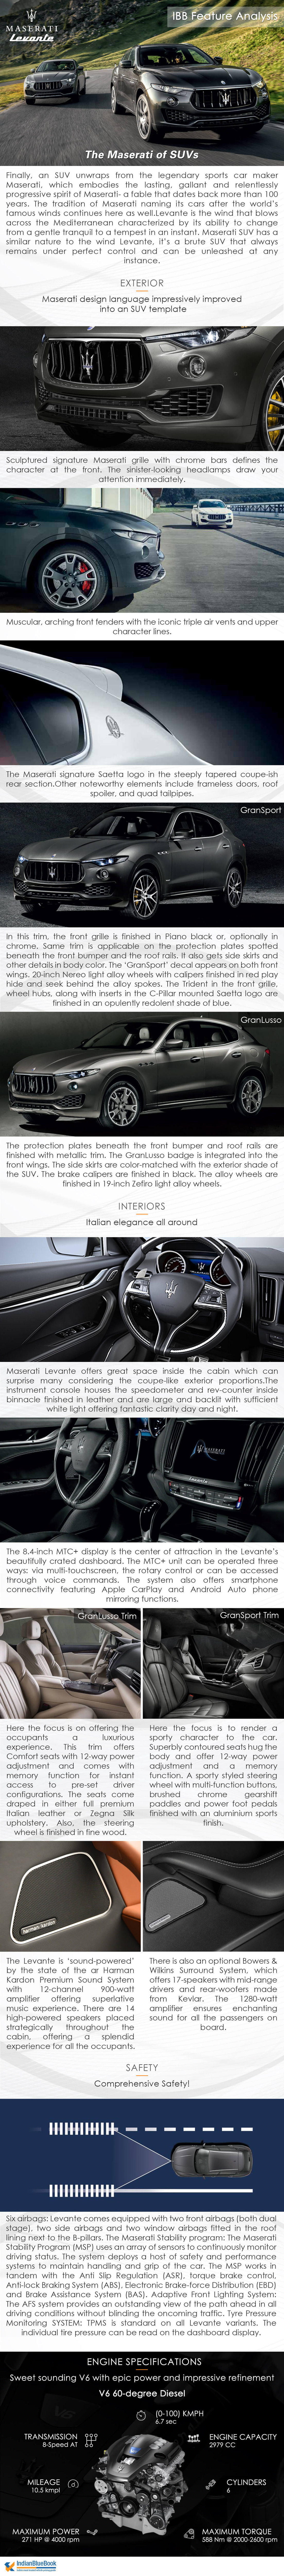 Maserati Levante Feature Analysis